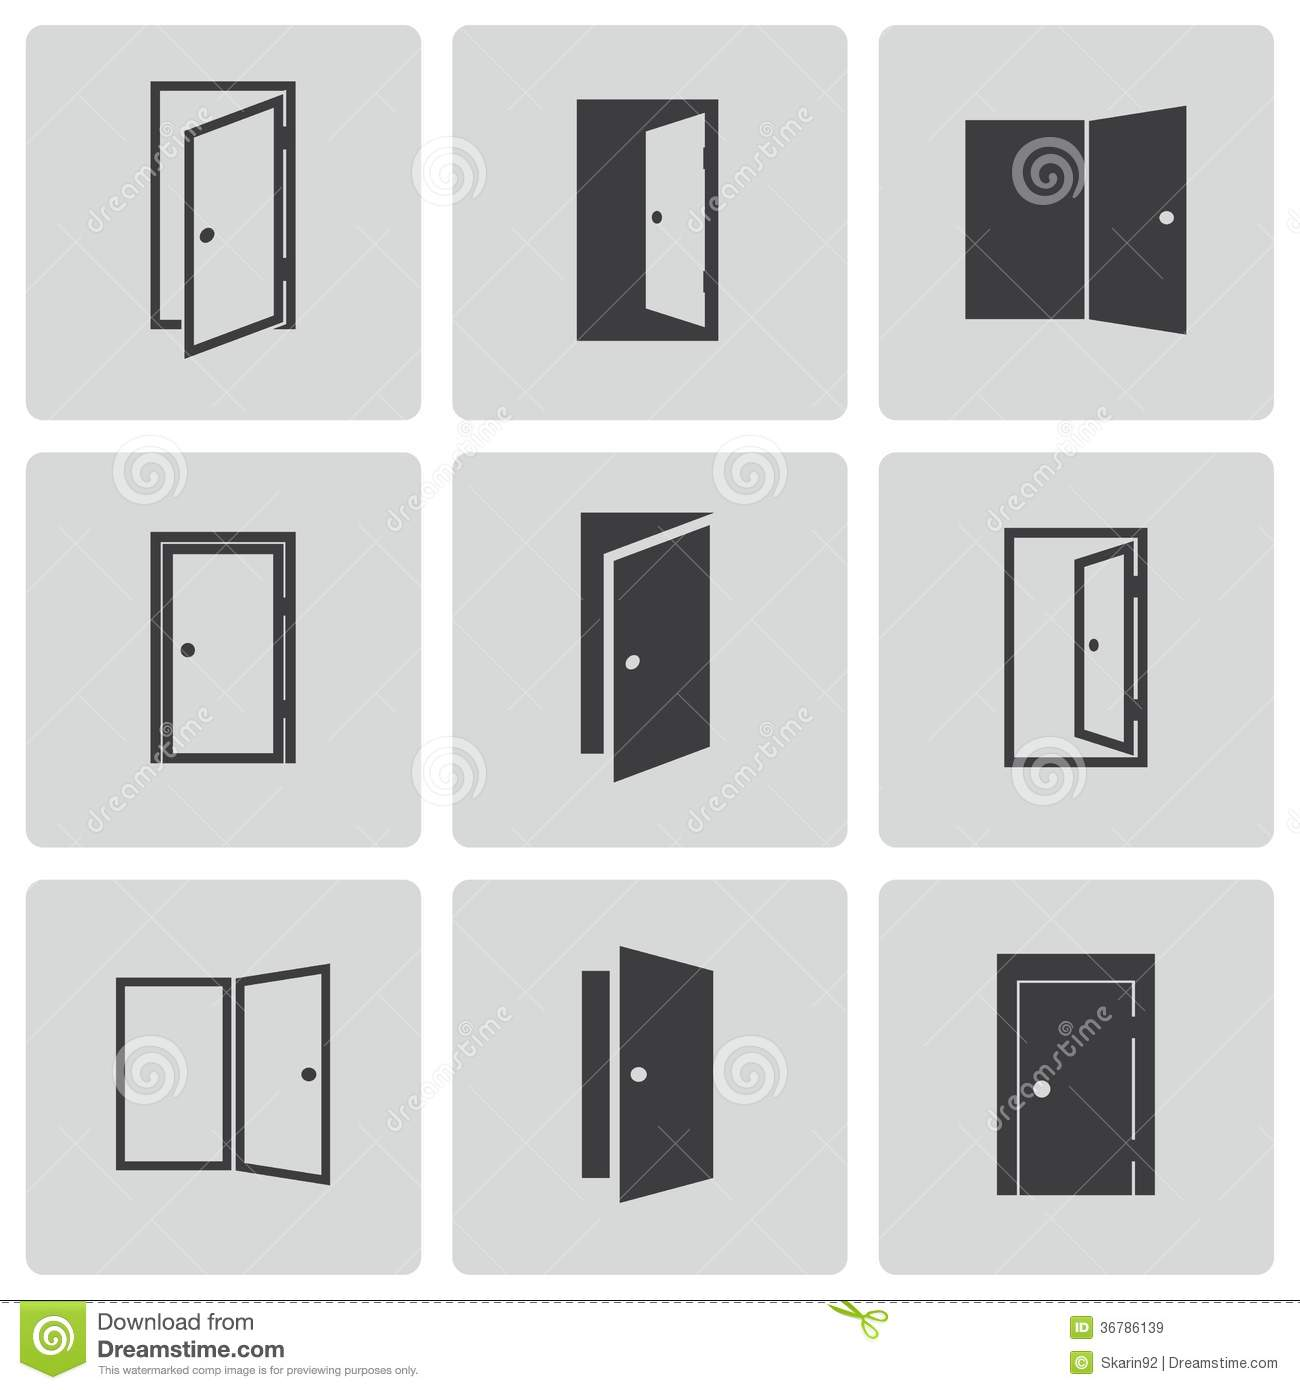 Open door closed door - Background Black Door Icons